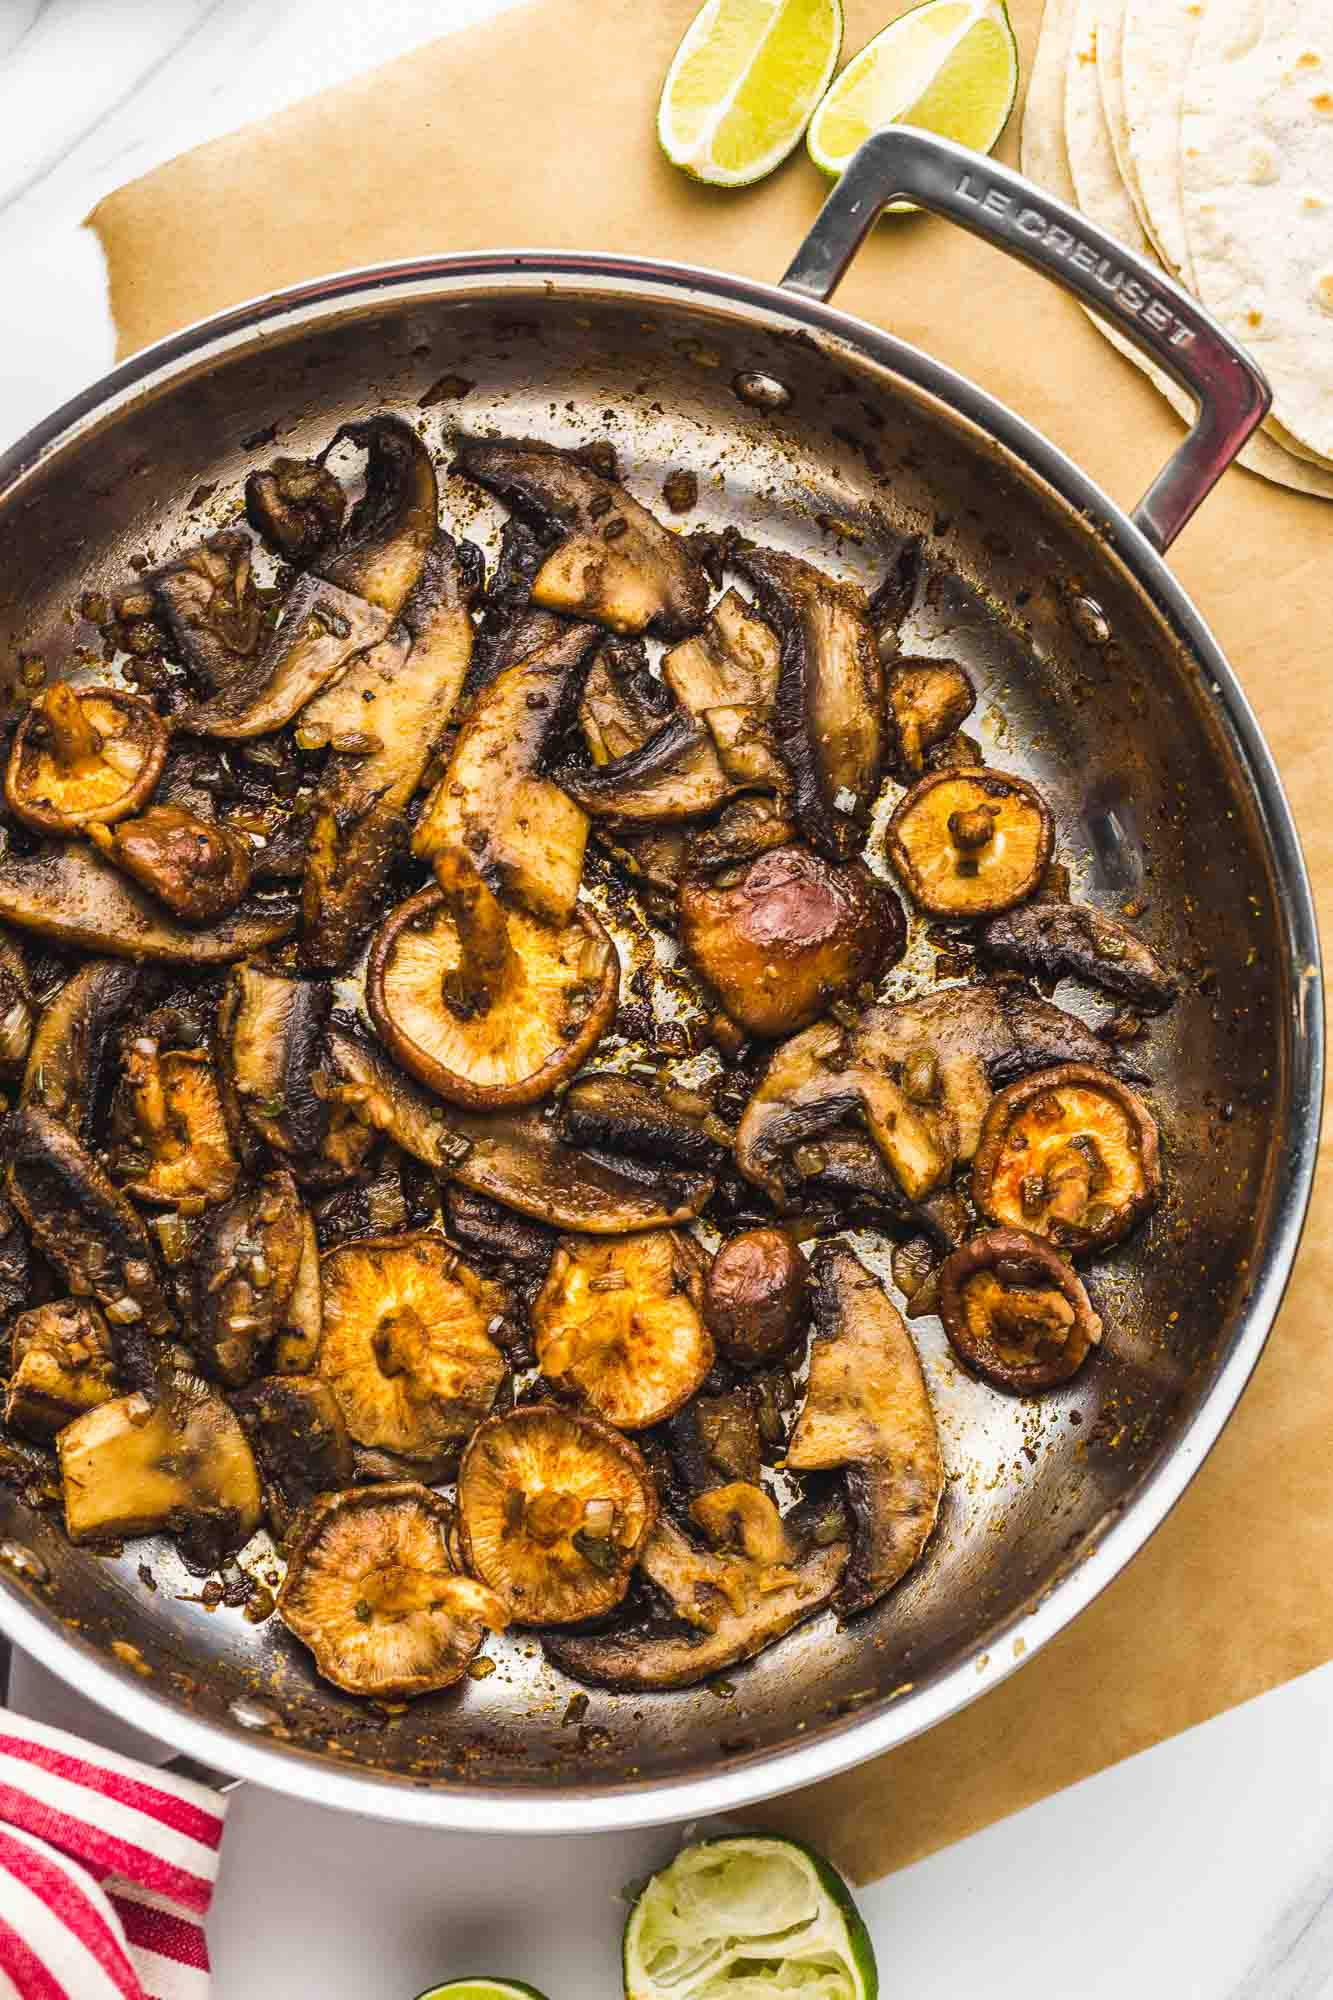 Sauteed mushrooms with taco seasoning in a stainless steel pan